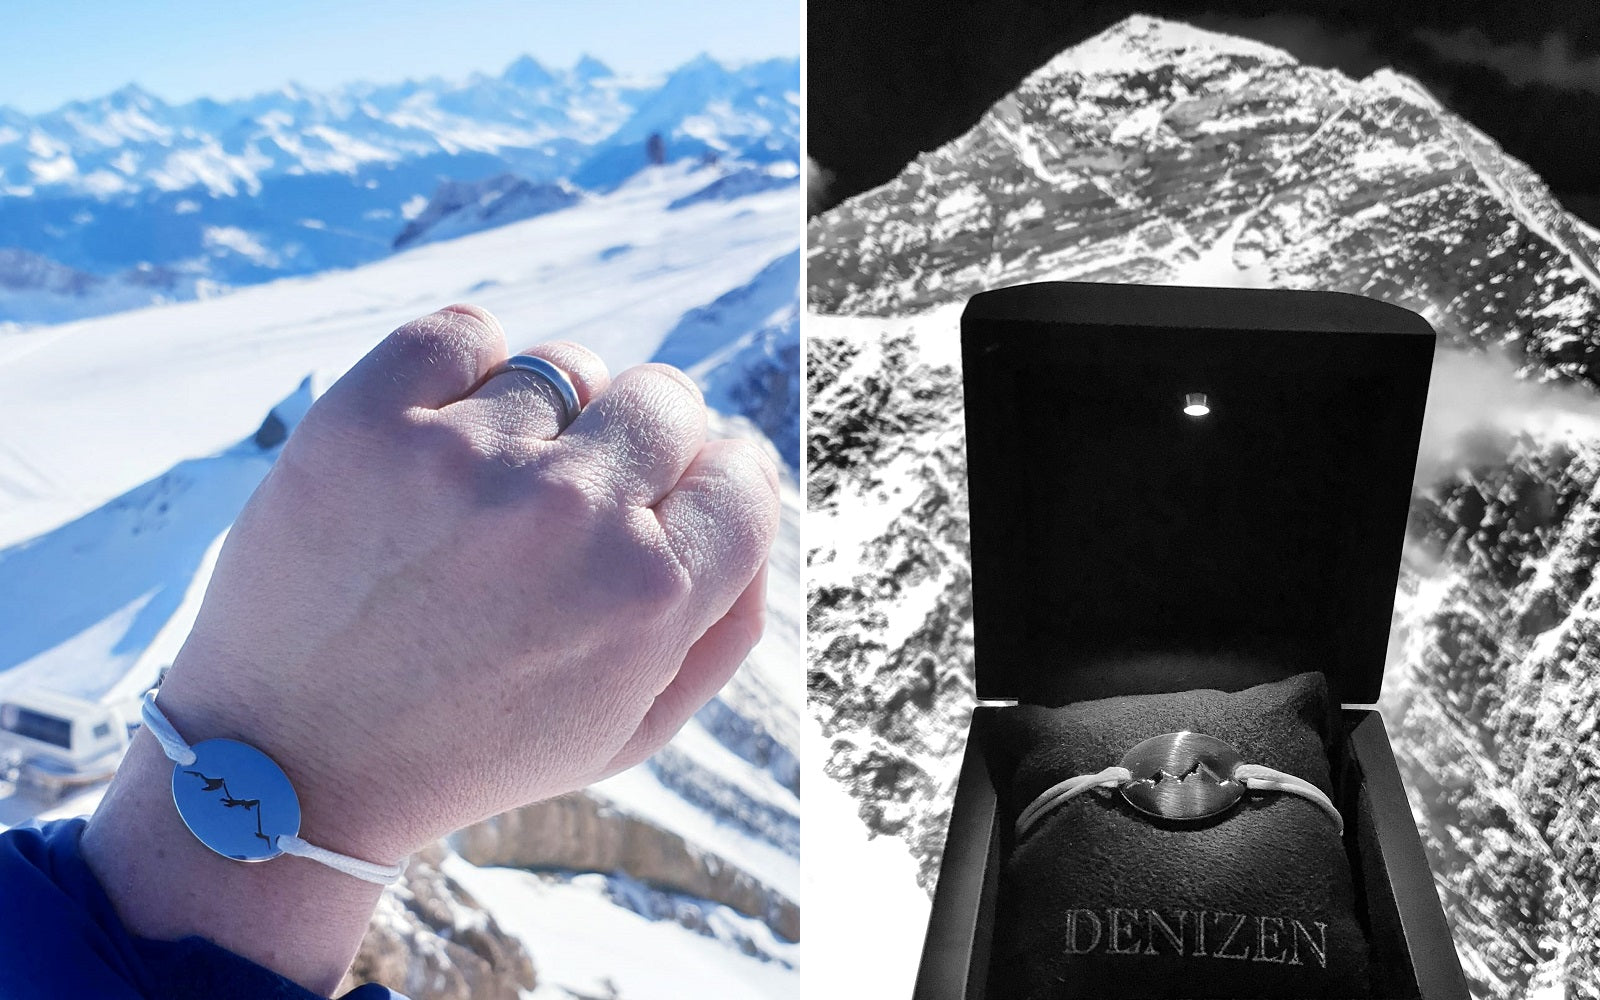 DENIZEN jewelry - Bracelet of Aspen Colorado